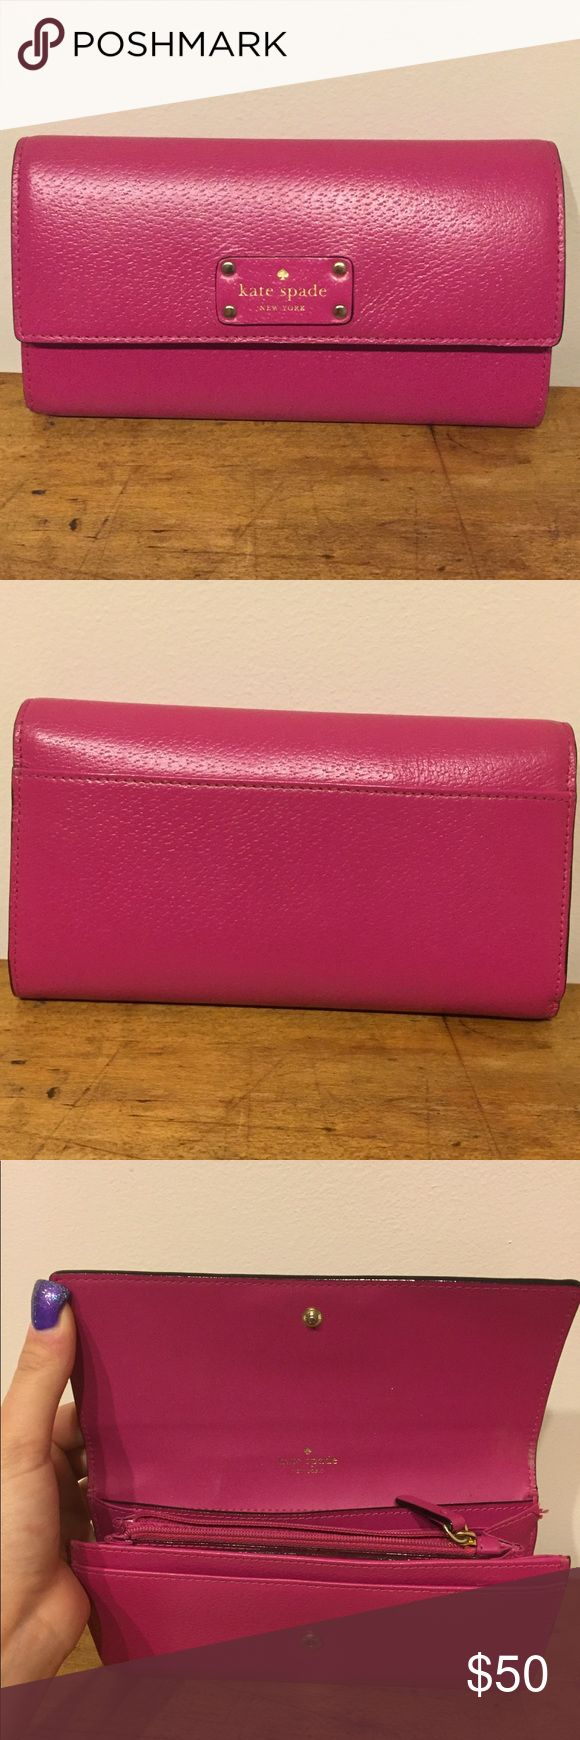 Final sale. Kate Spade Pink Wallet! Well loved, but the outside looks great, just mainly flaws on the inside all pictured. It's really cute! kate spade Bags